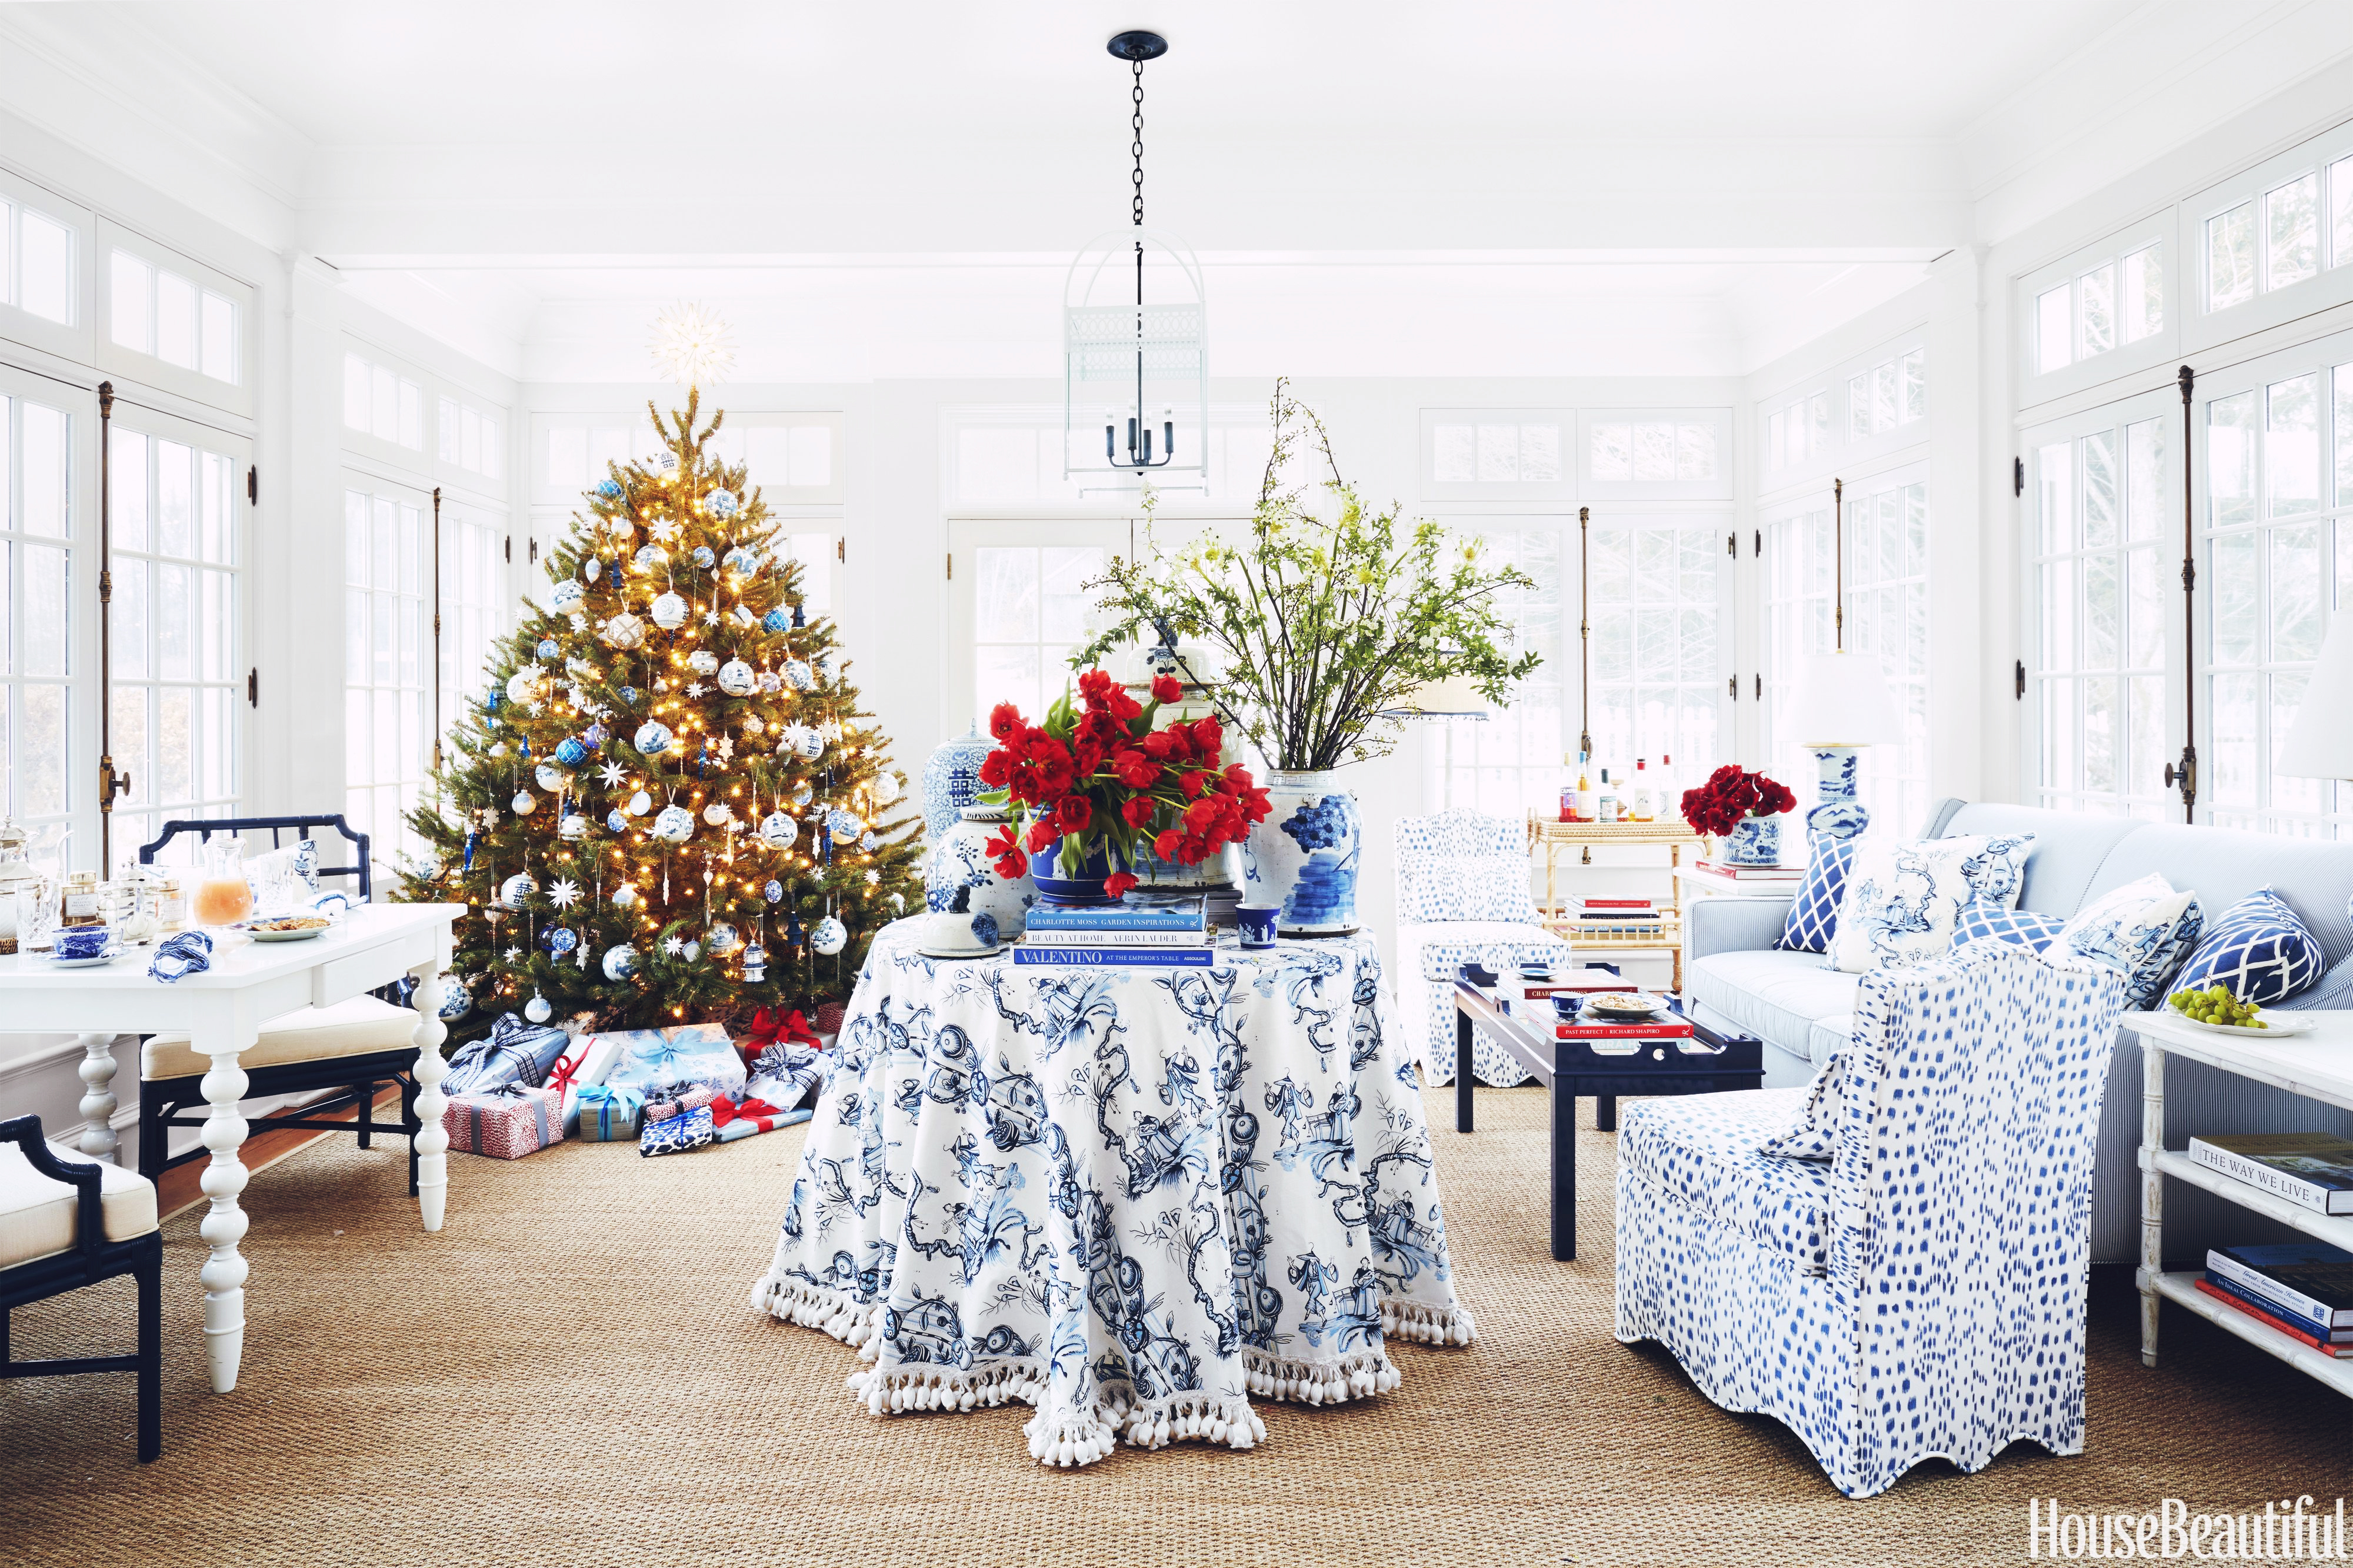 Holiday Inspiration: A Very Southern Christmas in a Connecticut Home Designed by Jenny Wolf Interiors